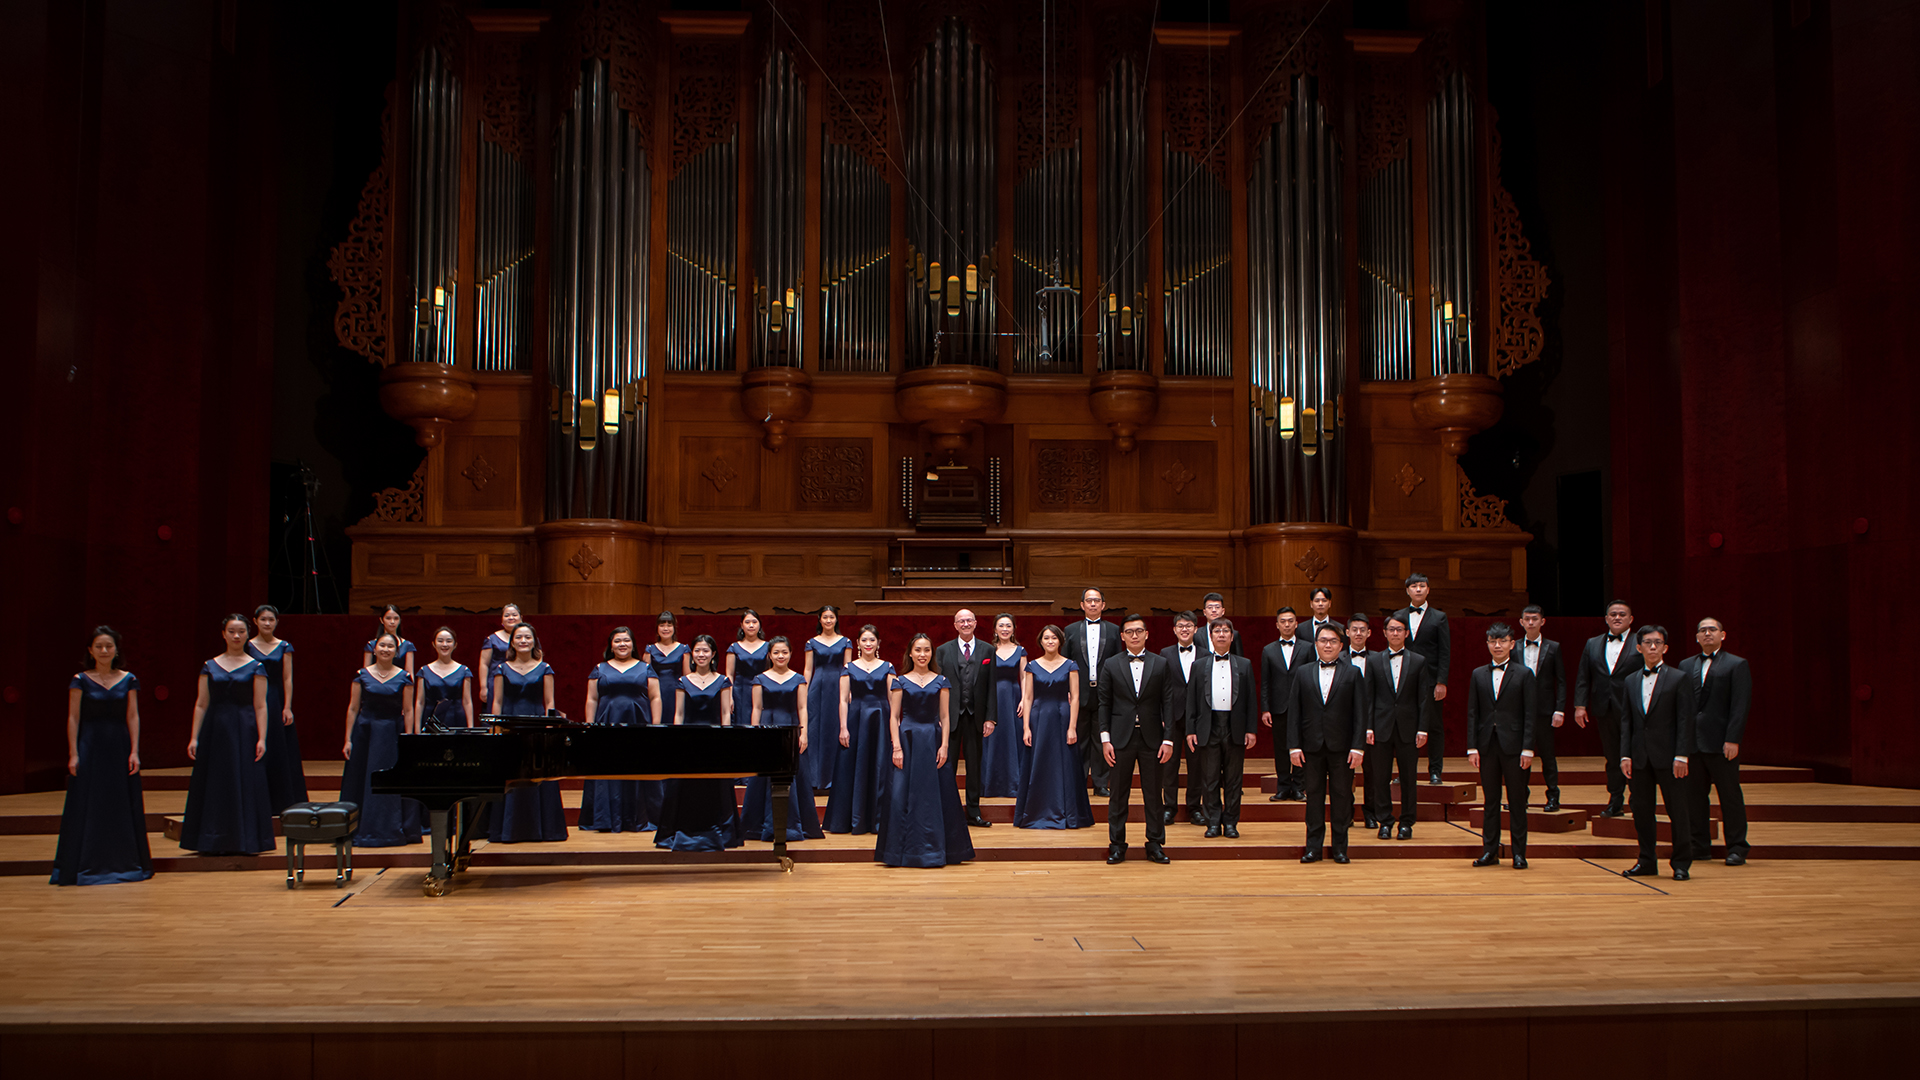 A choral ensemble stands on an ornate stage in formal attire